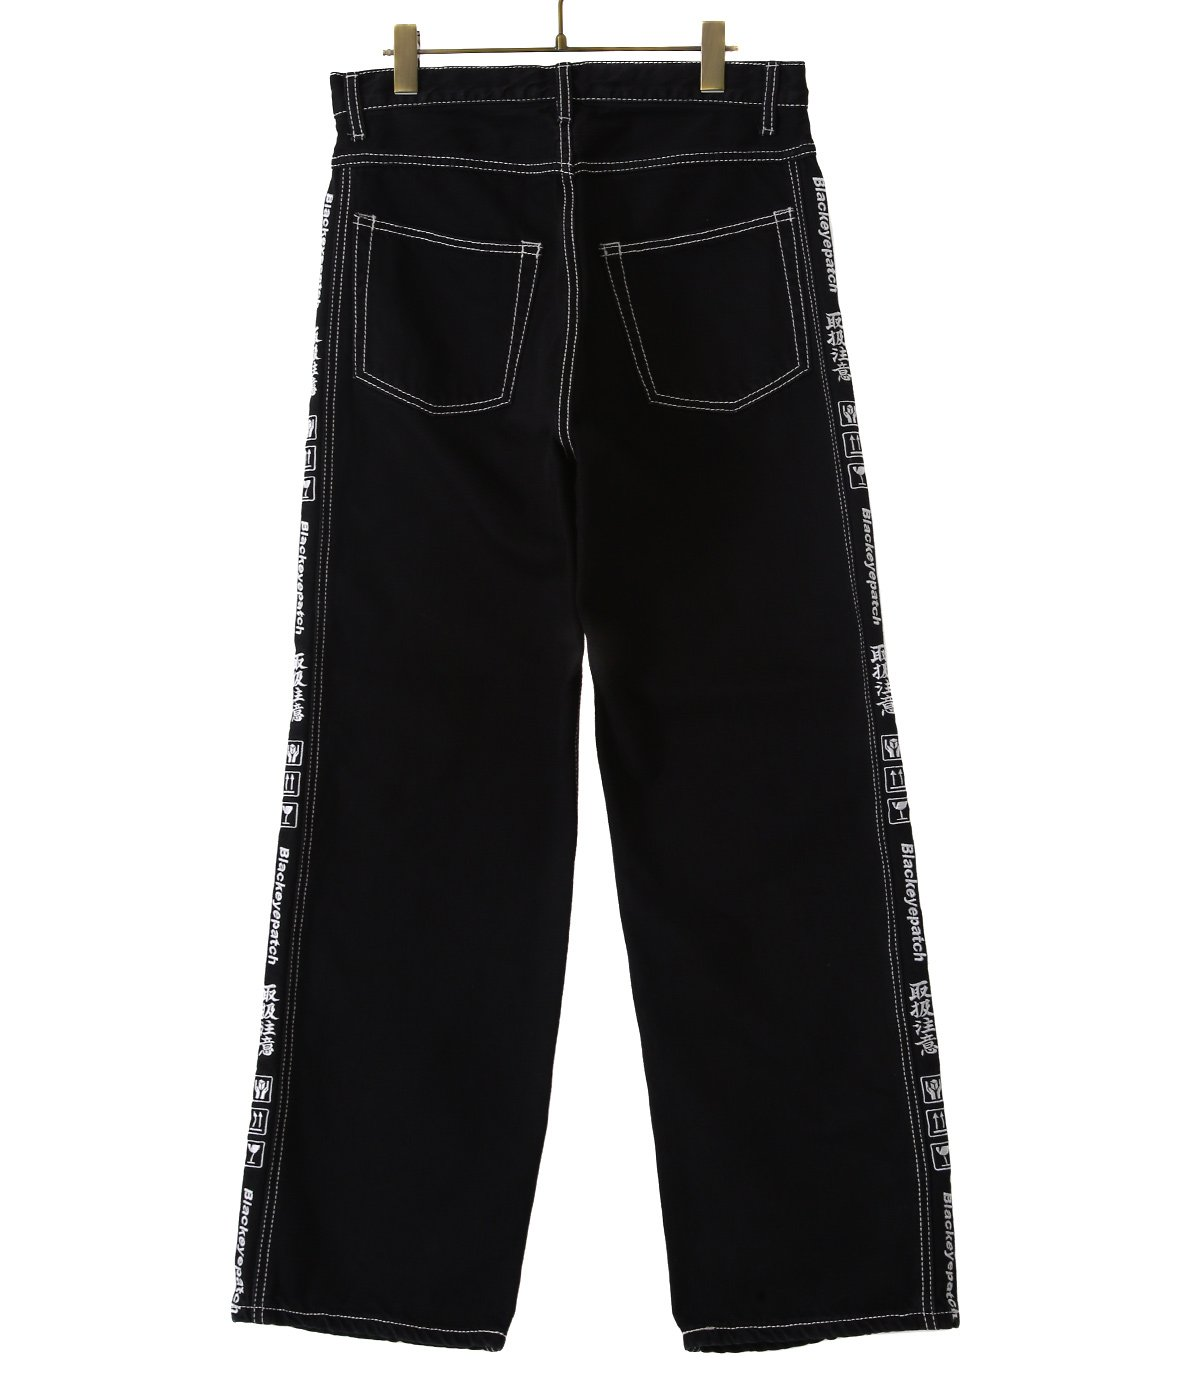 HANDLE WITH CARE DENIM PANTS (BOLD STITCHED)